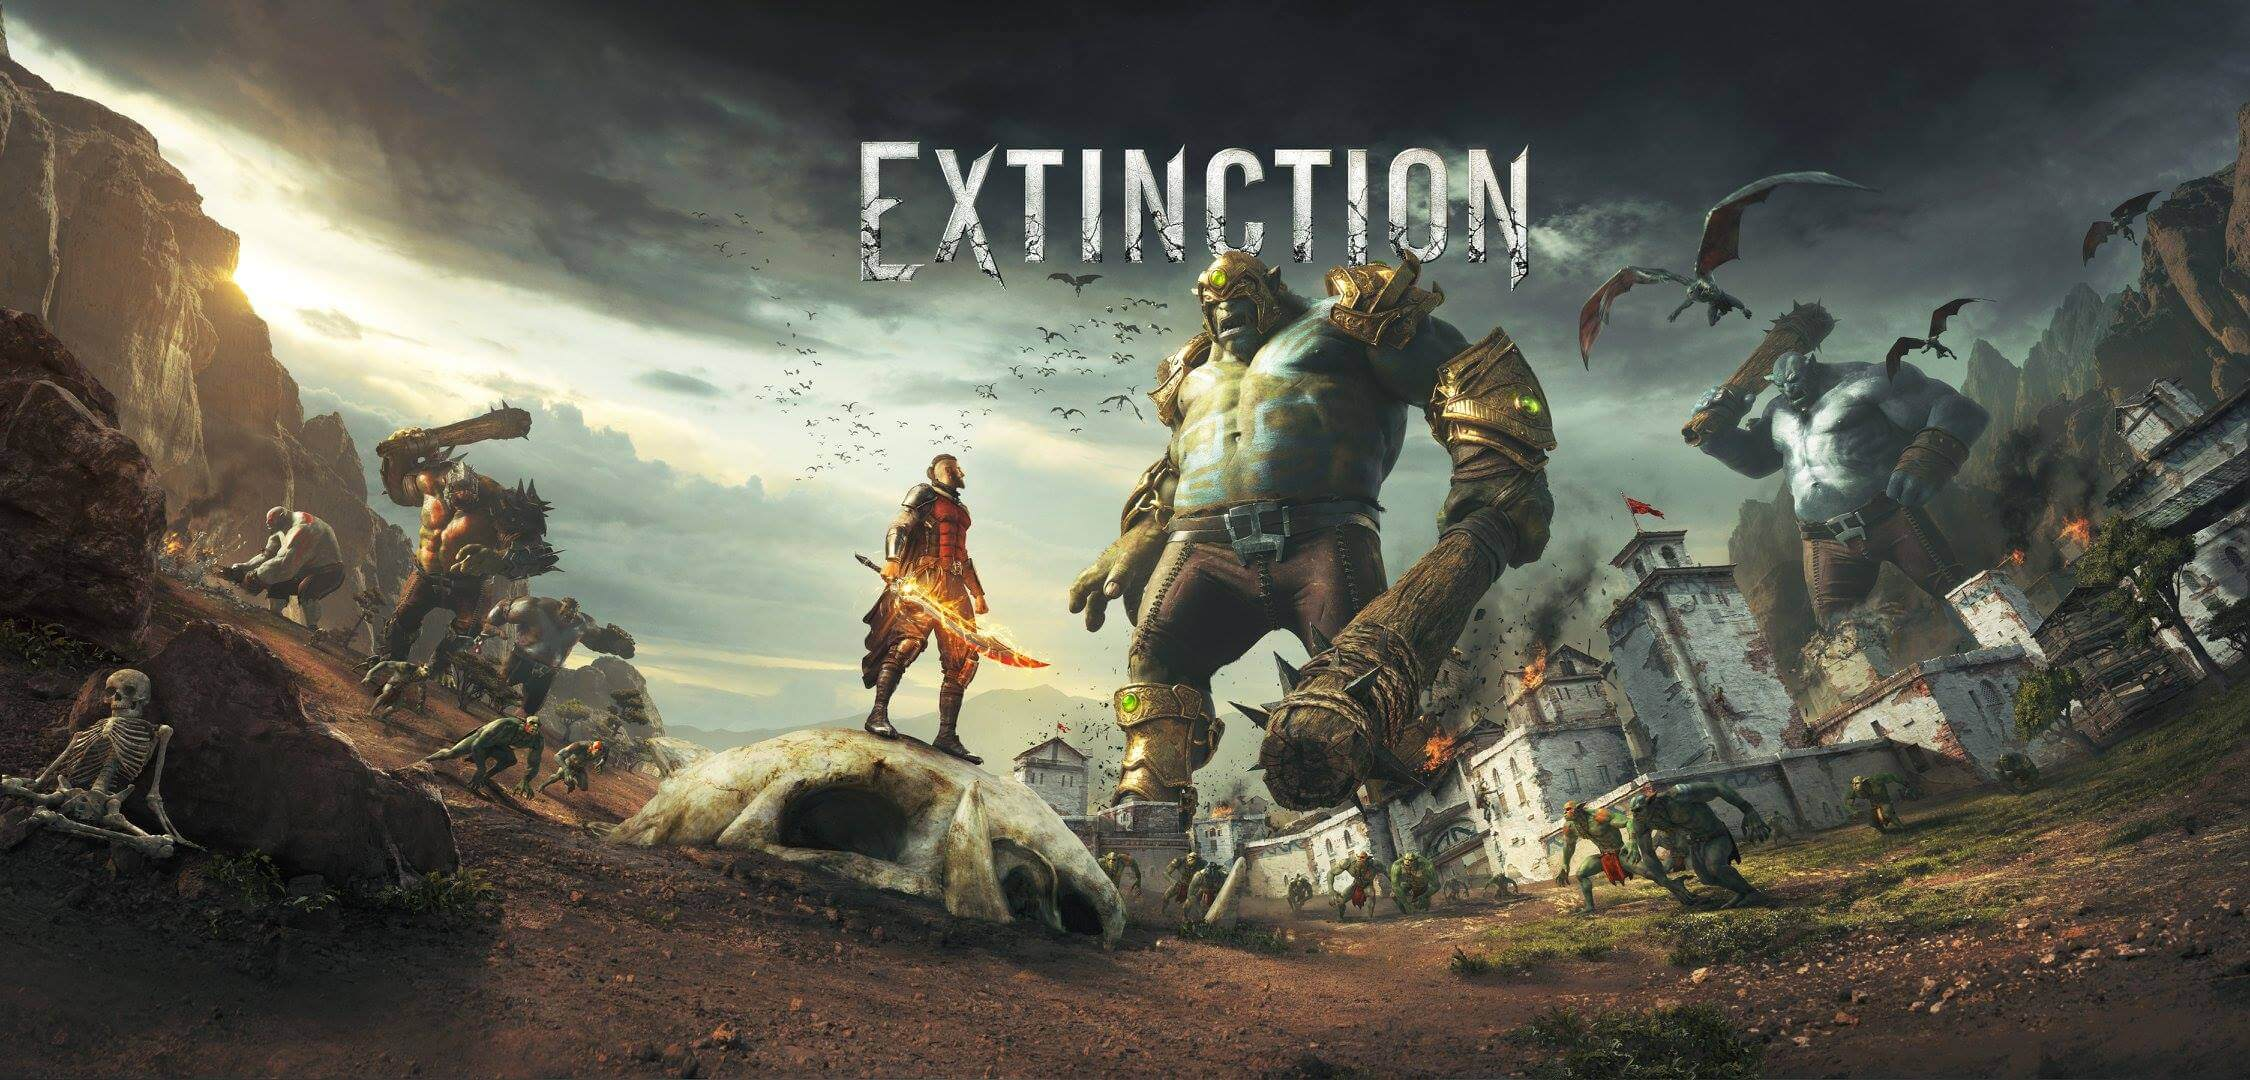 extinction game e3 1 - E3 2017: Extinction Goes Ultraviolent